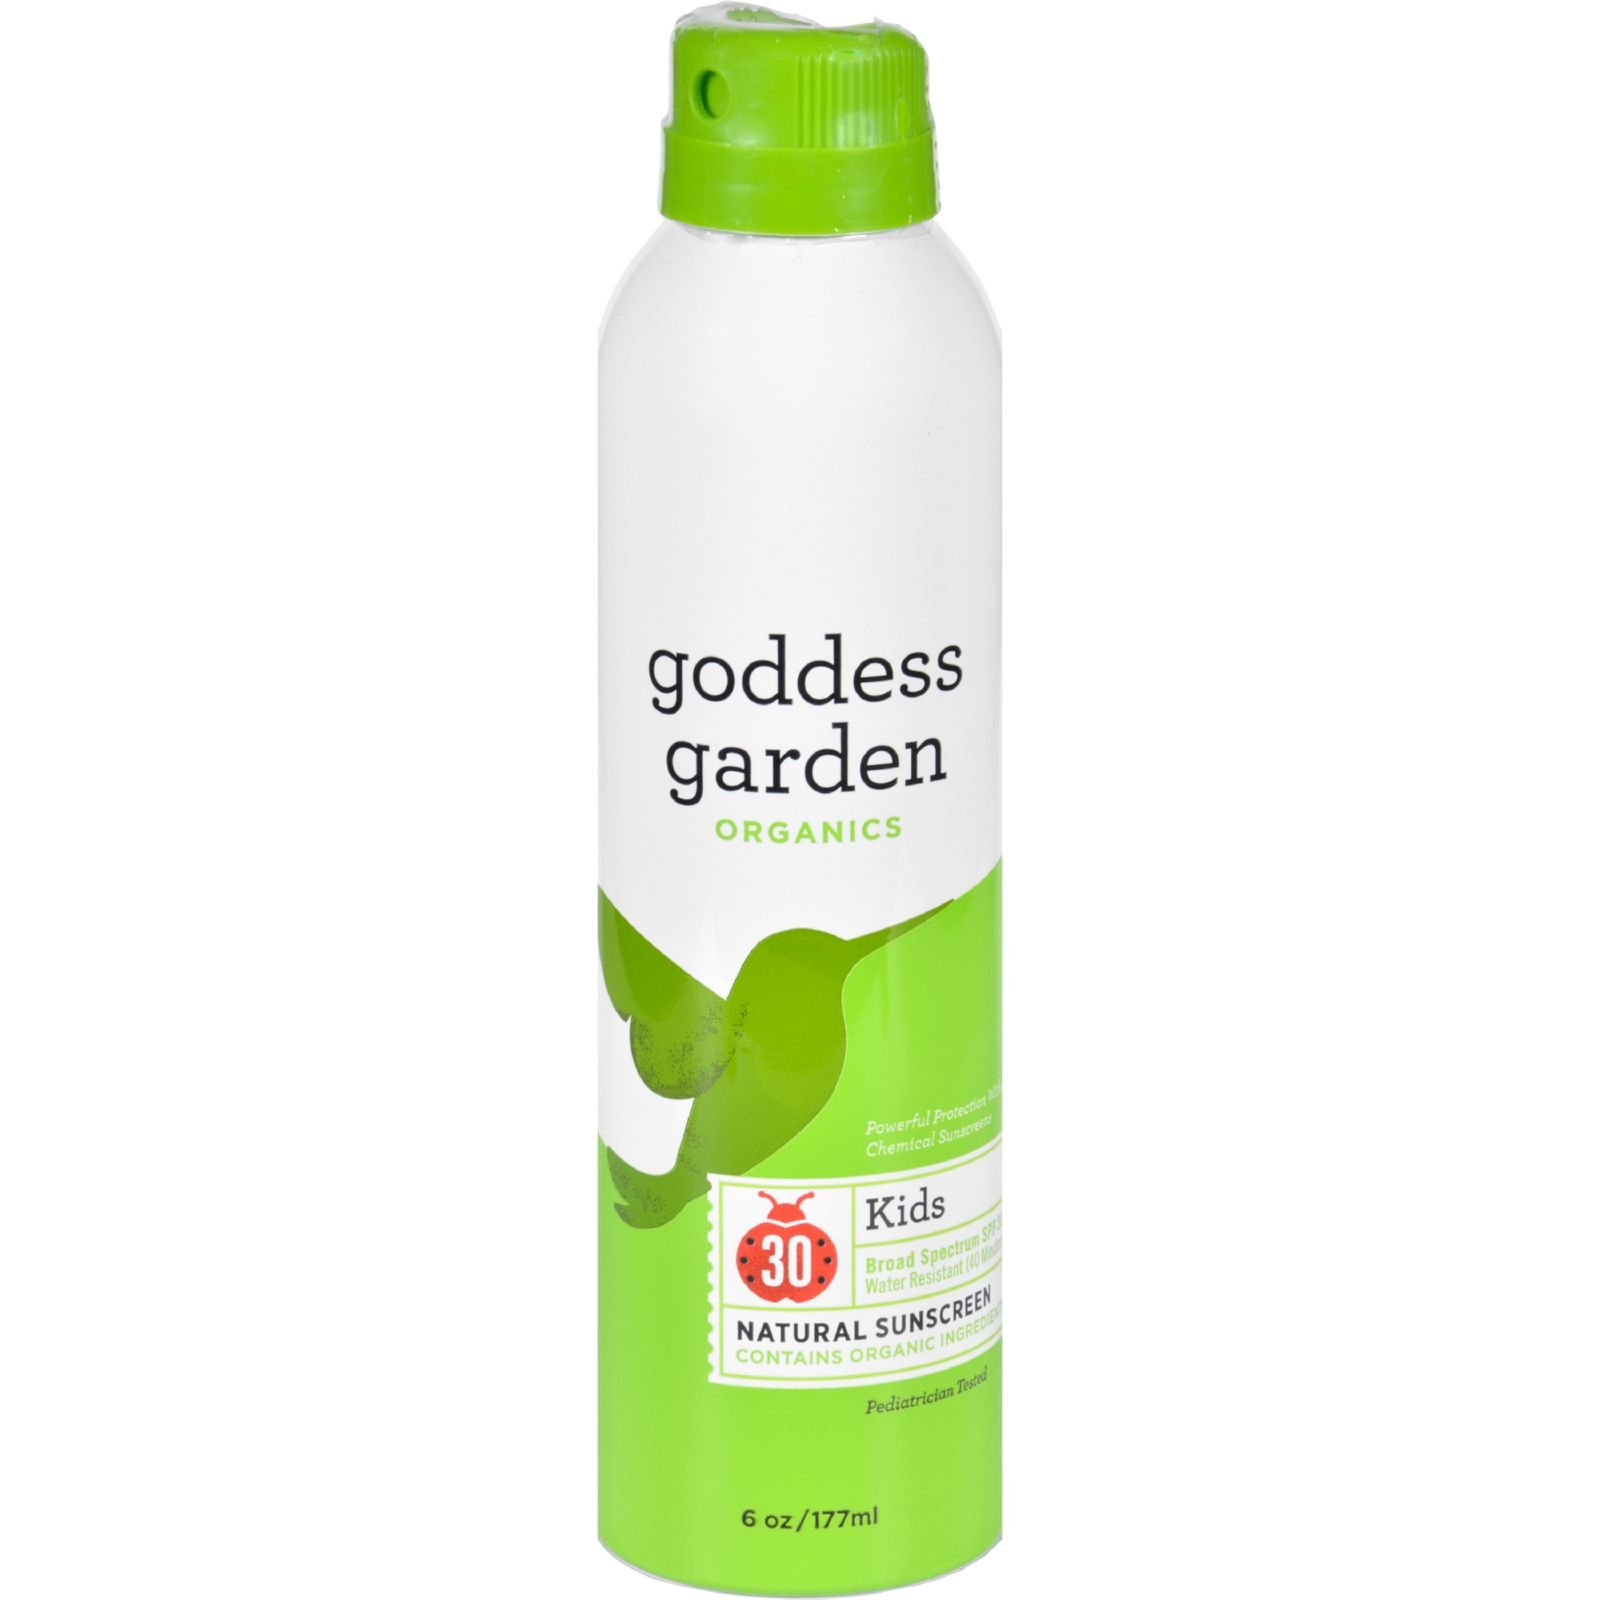 Goddess Garden Sunny Kids Natural Sunscreen Spf 30 Continuous Spray - 6 oz (pack of 6) image may vary by Goddess Garden